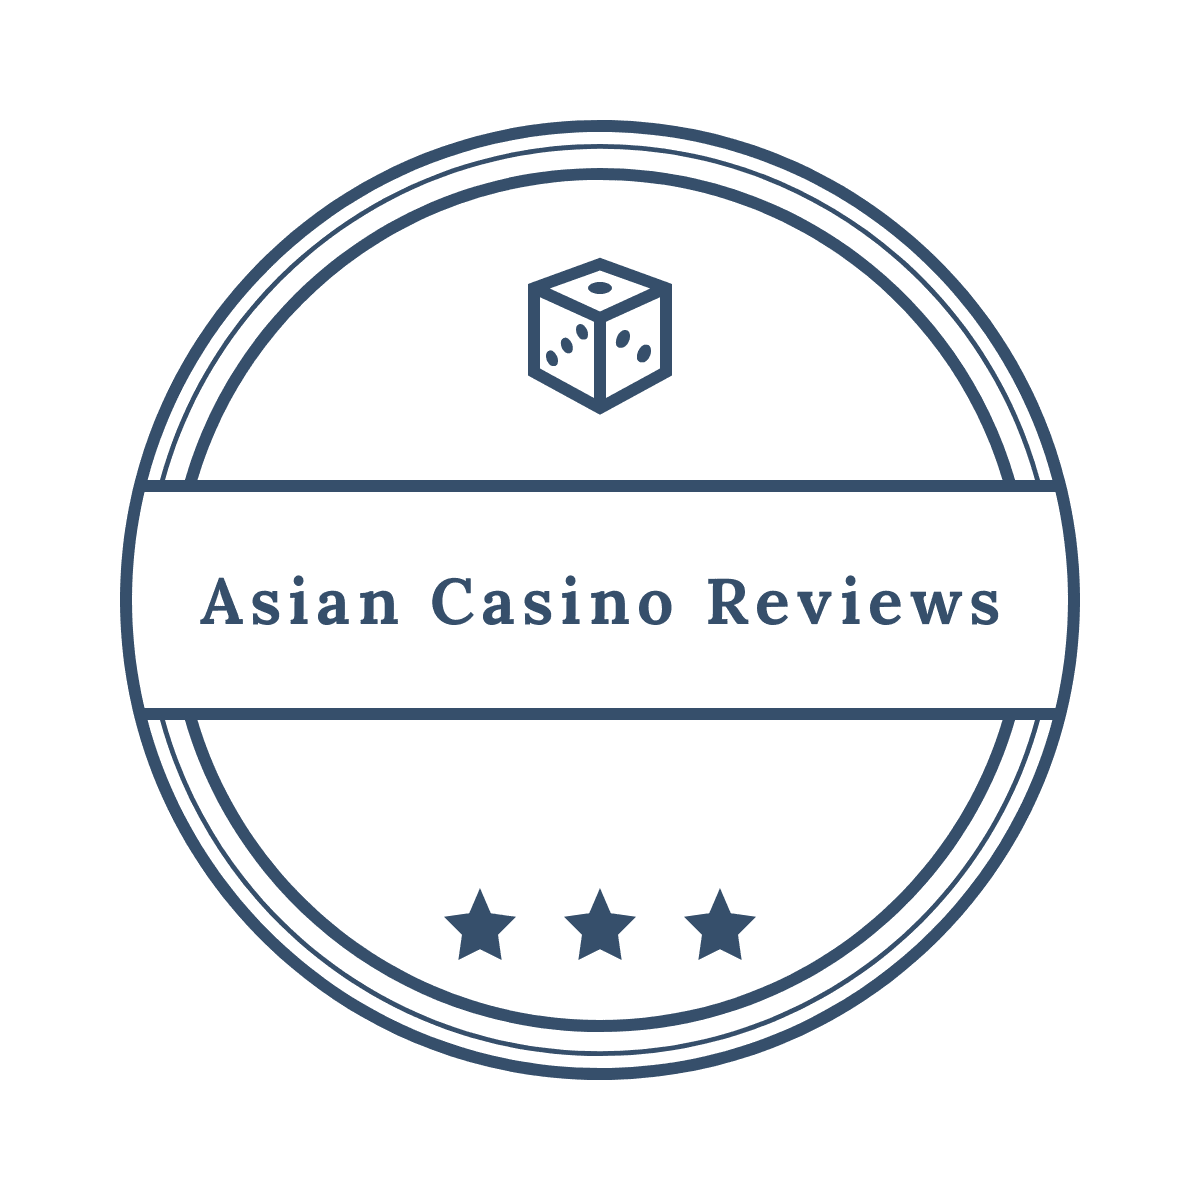 Asian Casino Reviews